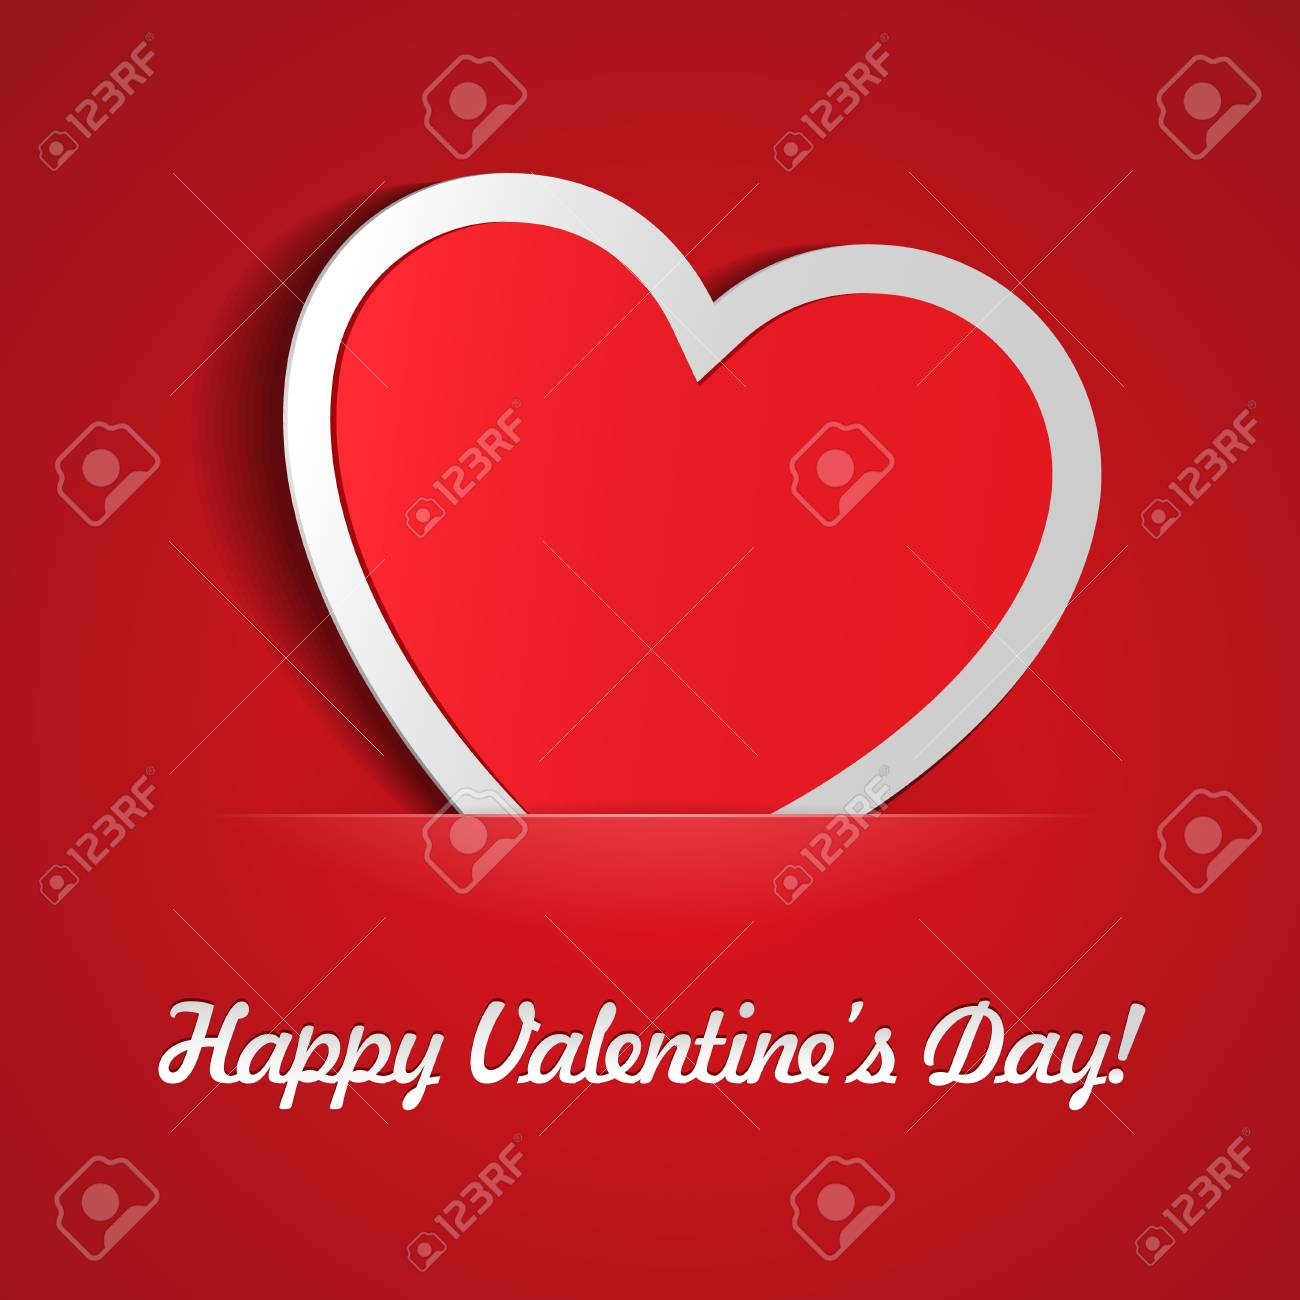 Red Heart Paper Sticker With Shadow Valentine s day vector illustration Postcard Stock Vector - 17472474